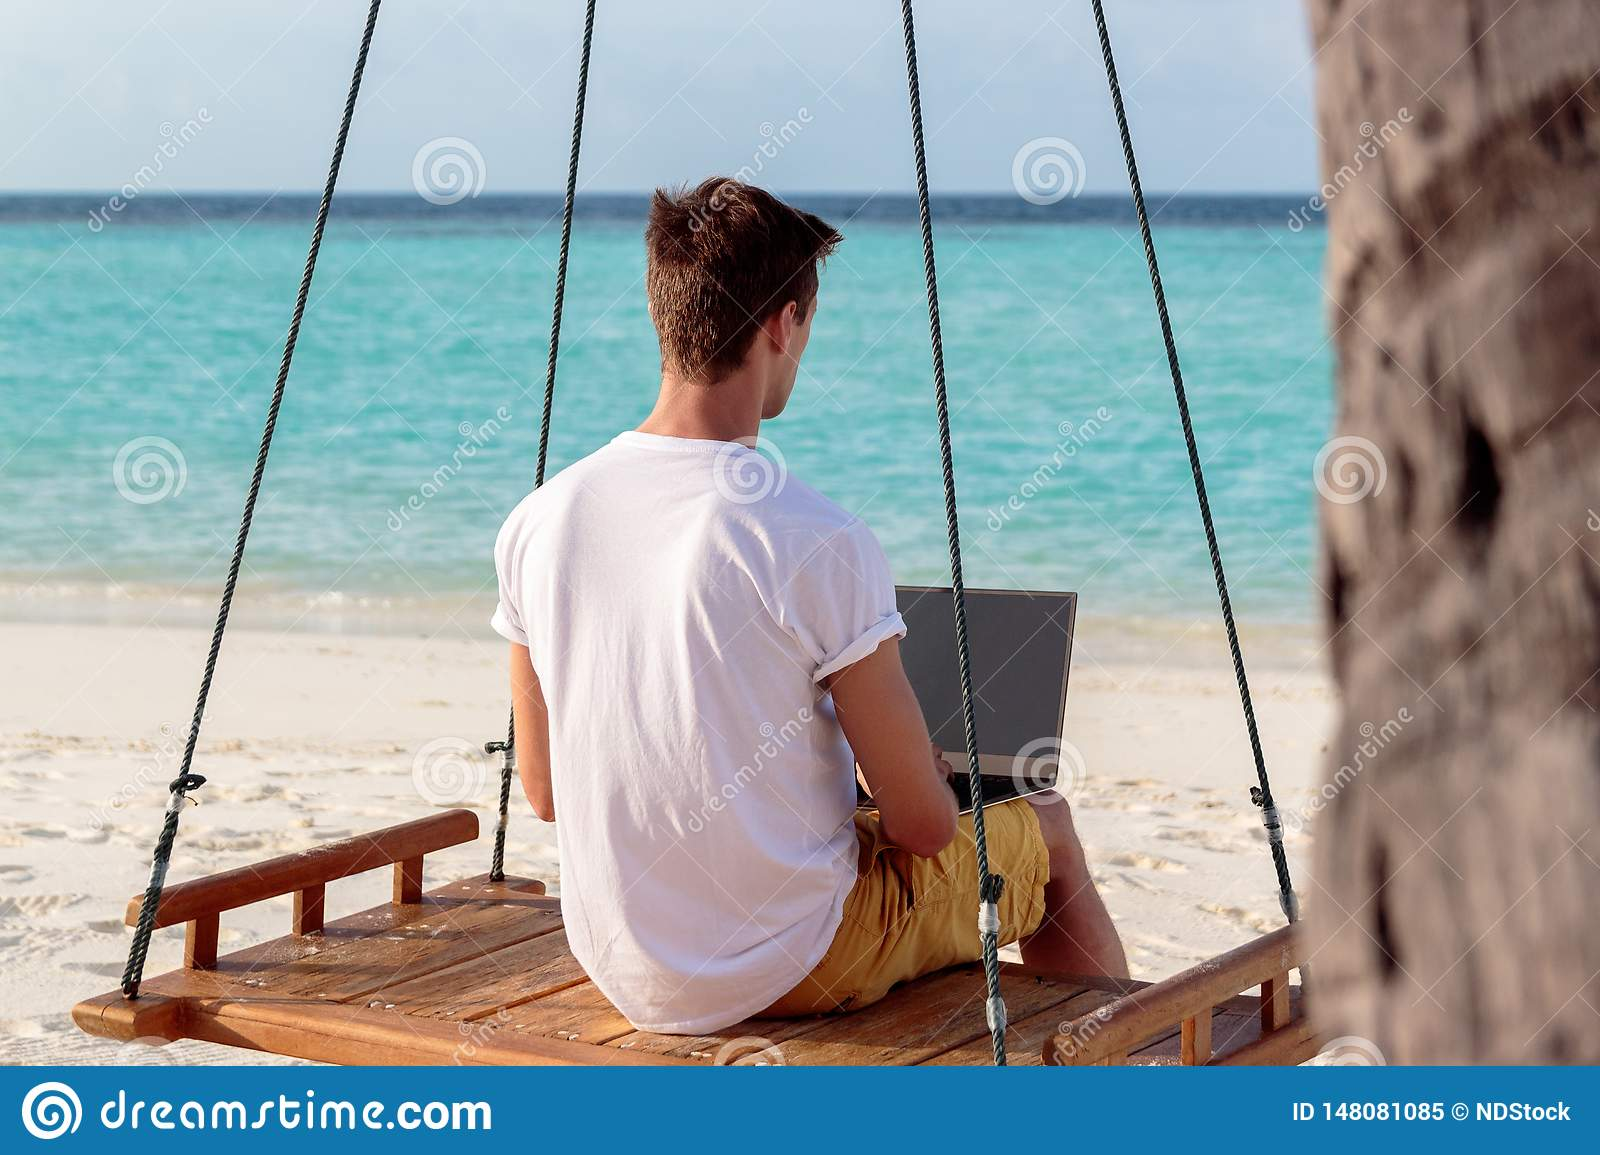 Young man seated on a swing and working with his laptop. Clear blue tropical water as background